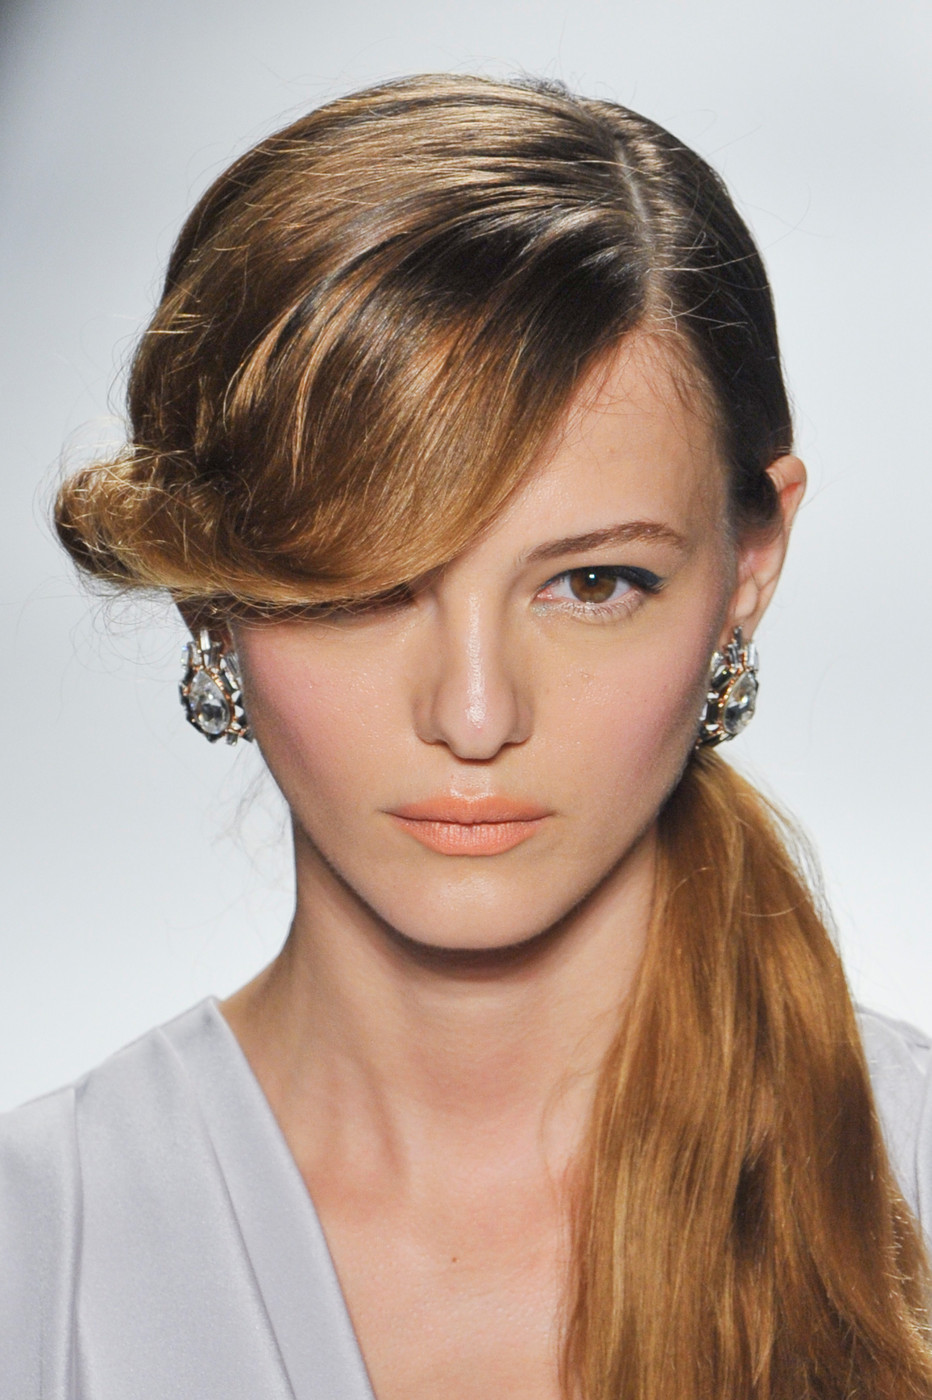 7 Best Hairstyles For Spring : Jenny packham spring best runway hair